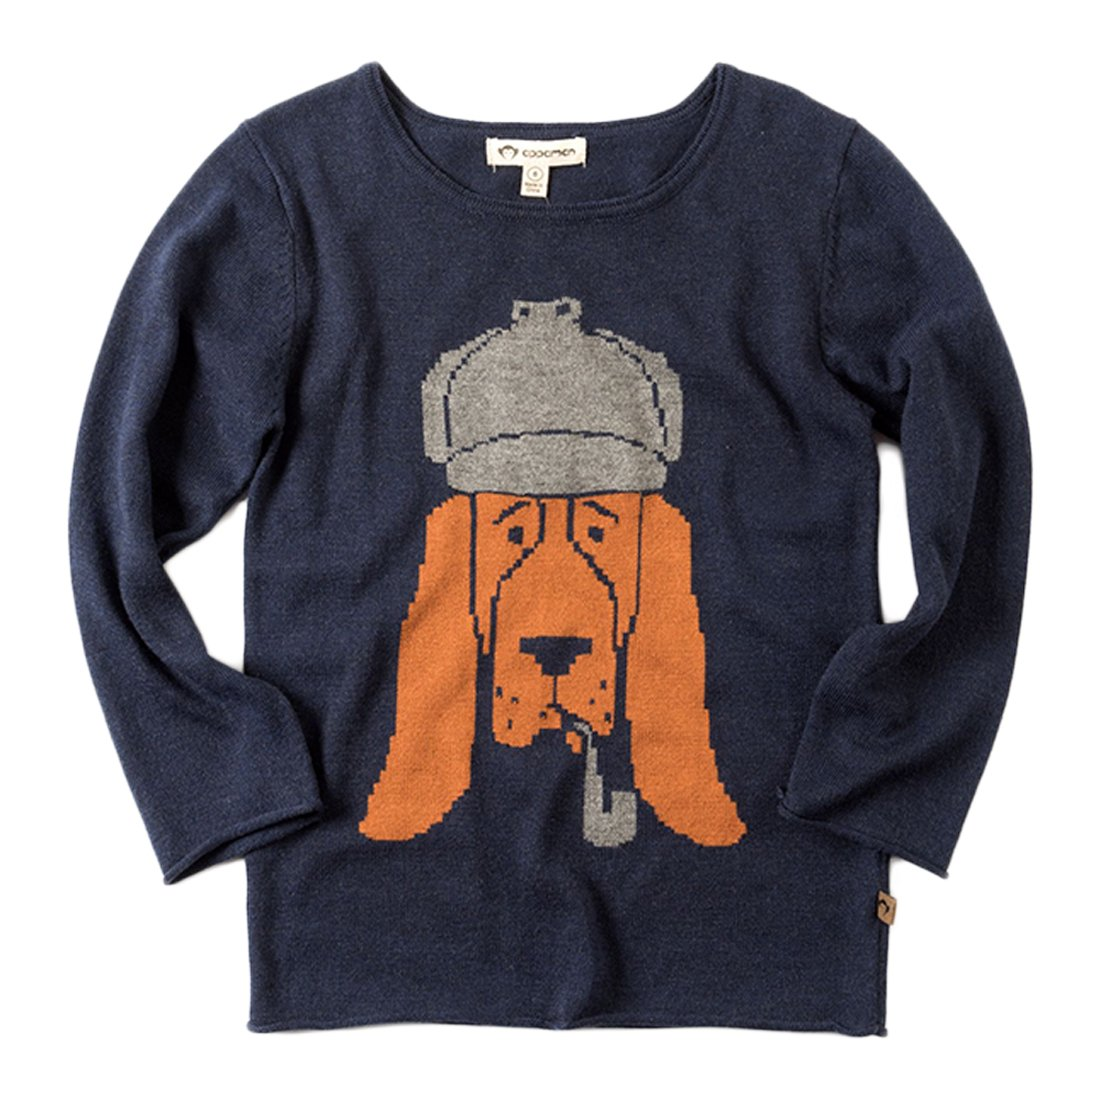 Appaman Big Boys' Bromley Bloodhound Sweater in Peacoat Blue 8